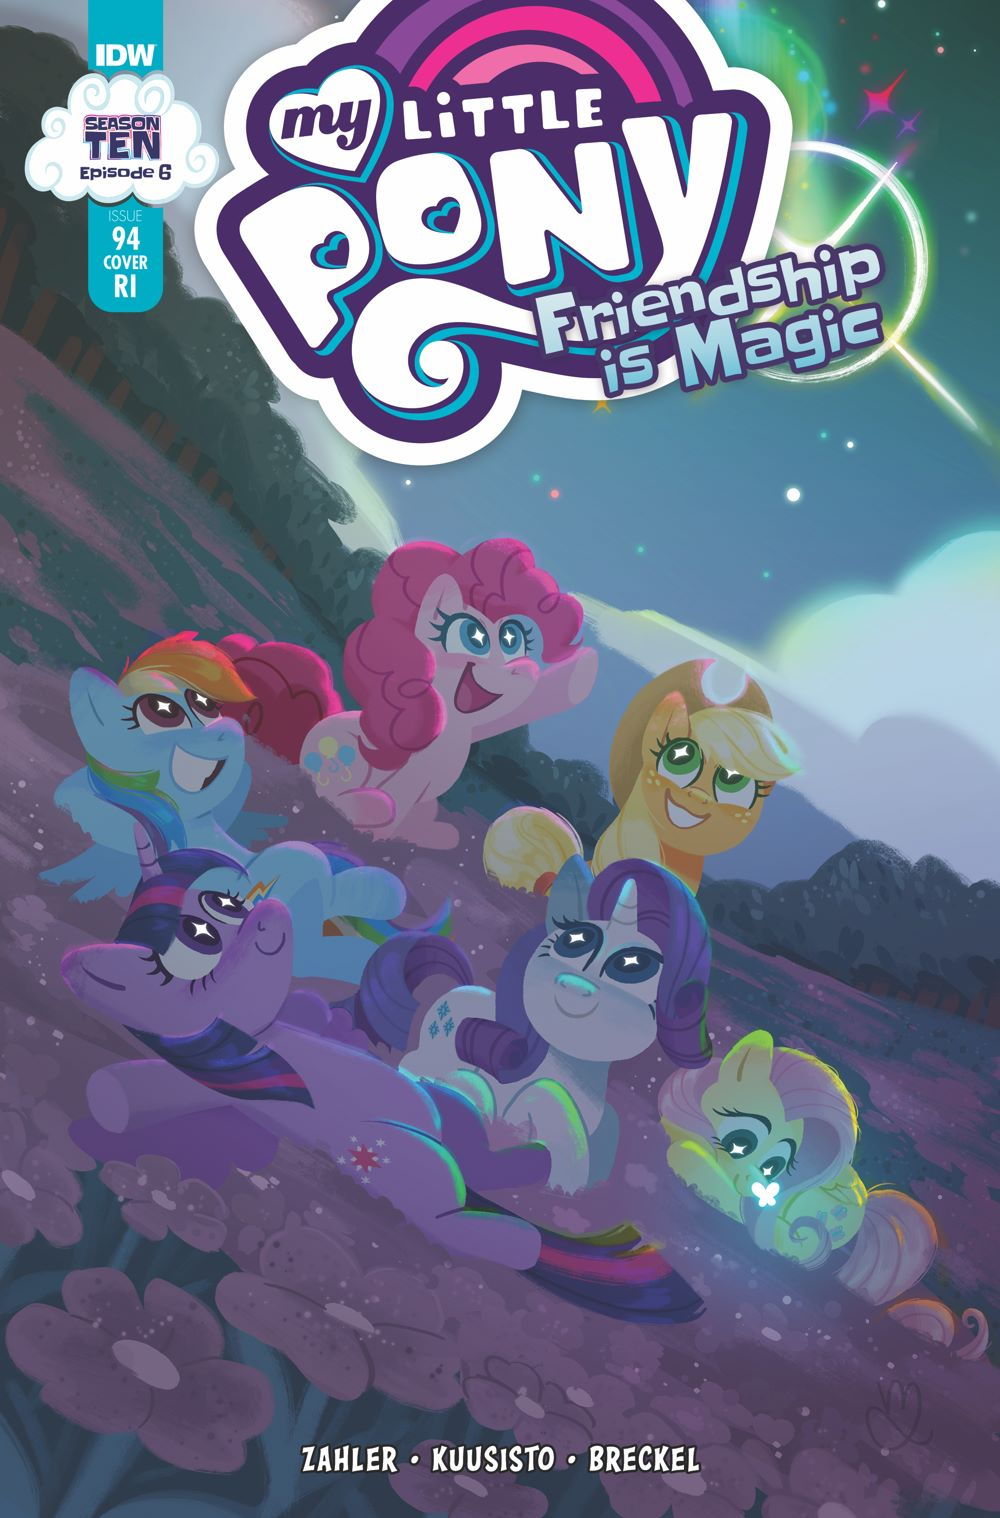 MLP94_06-coverRI ComicList Previews: MY LITTLE PONY FRIENDSHIP IS MAGIC #94